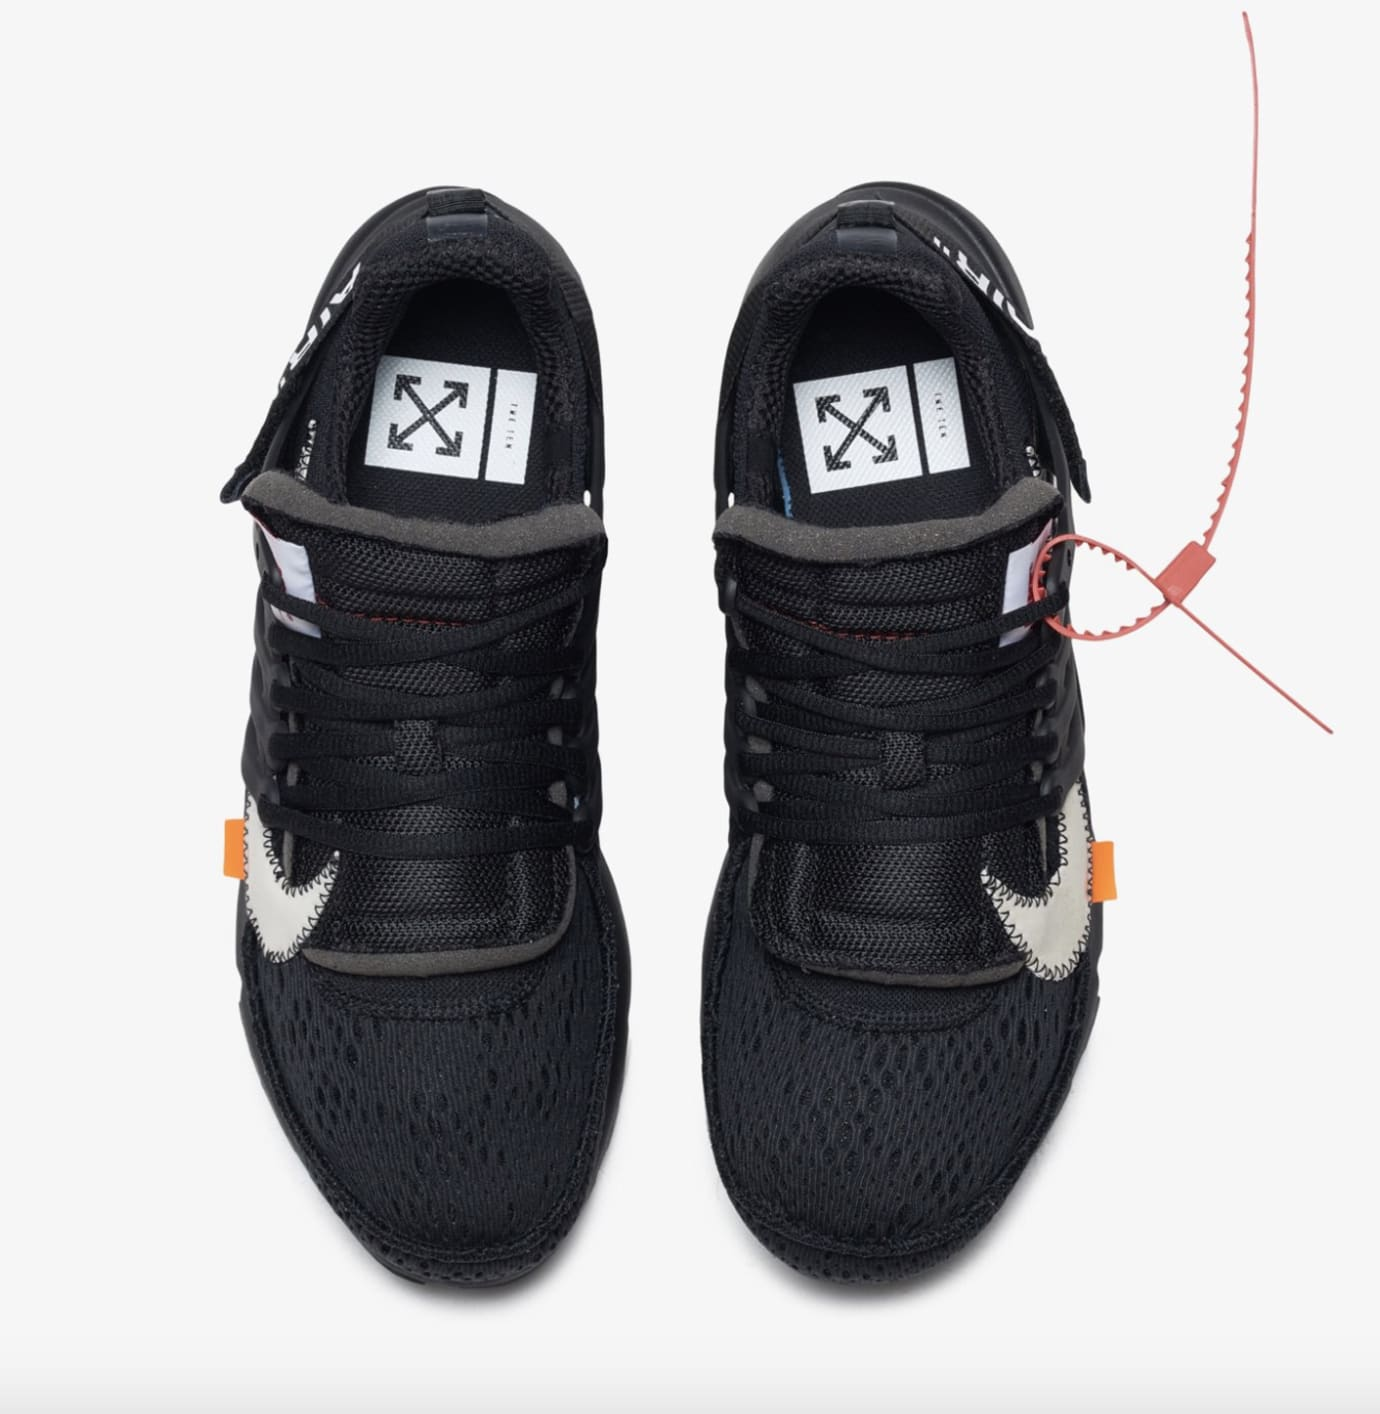 Off-White x Nike Air Presto 'Polar Opposites/Black' AA3830-002 (Top)